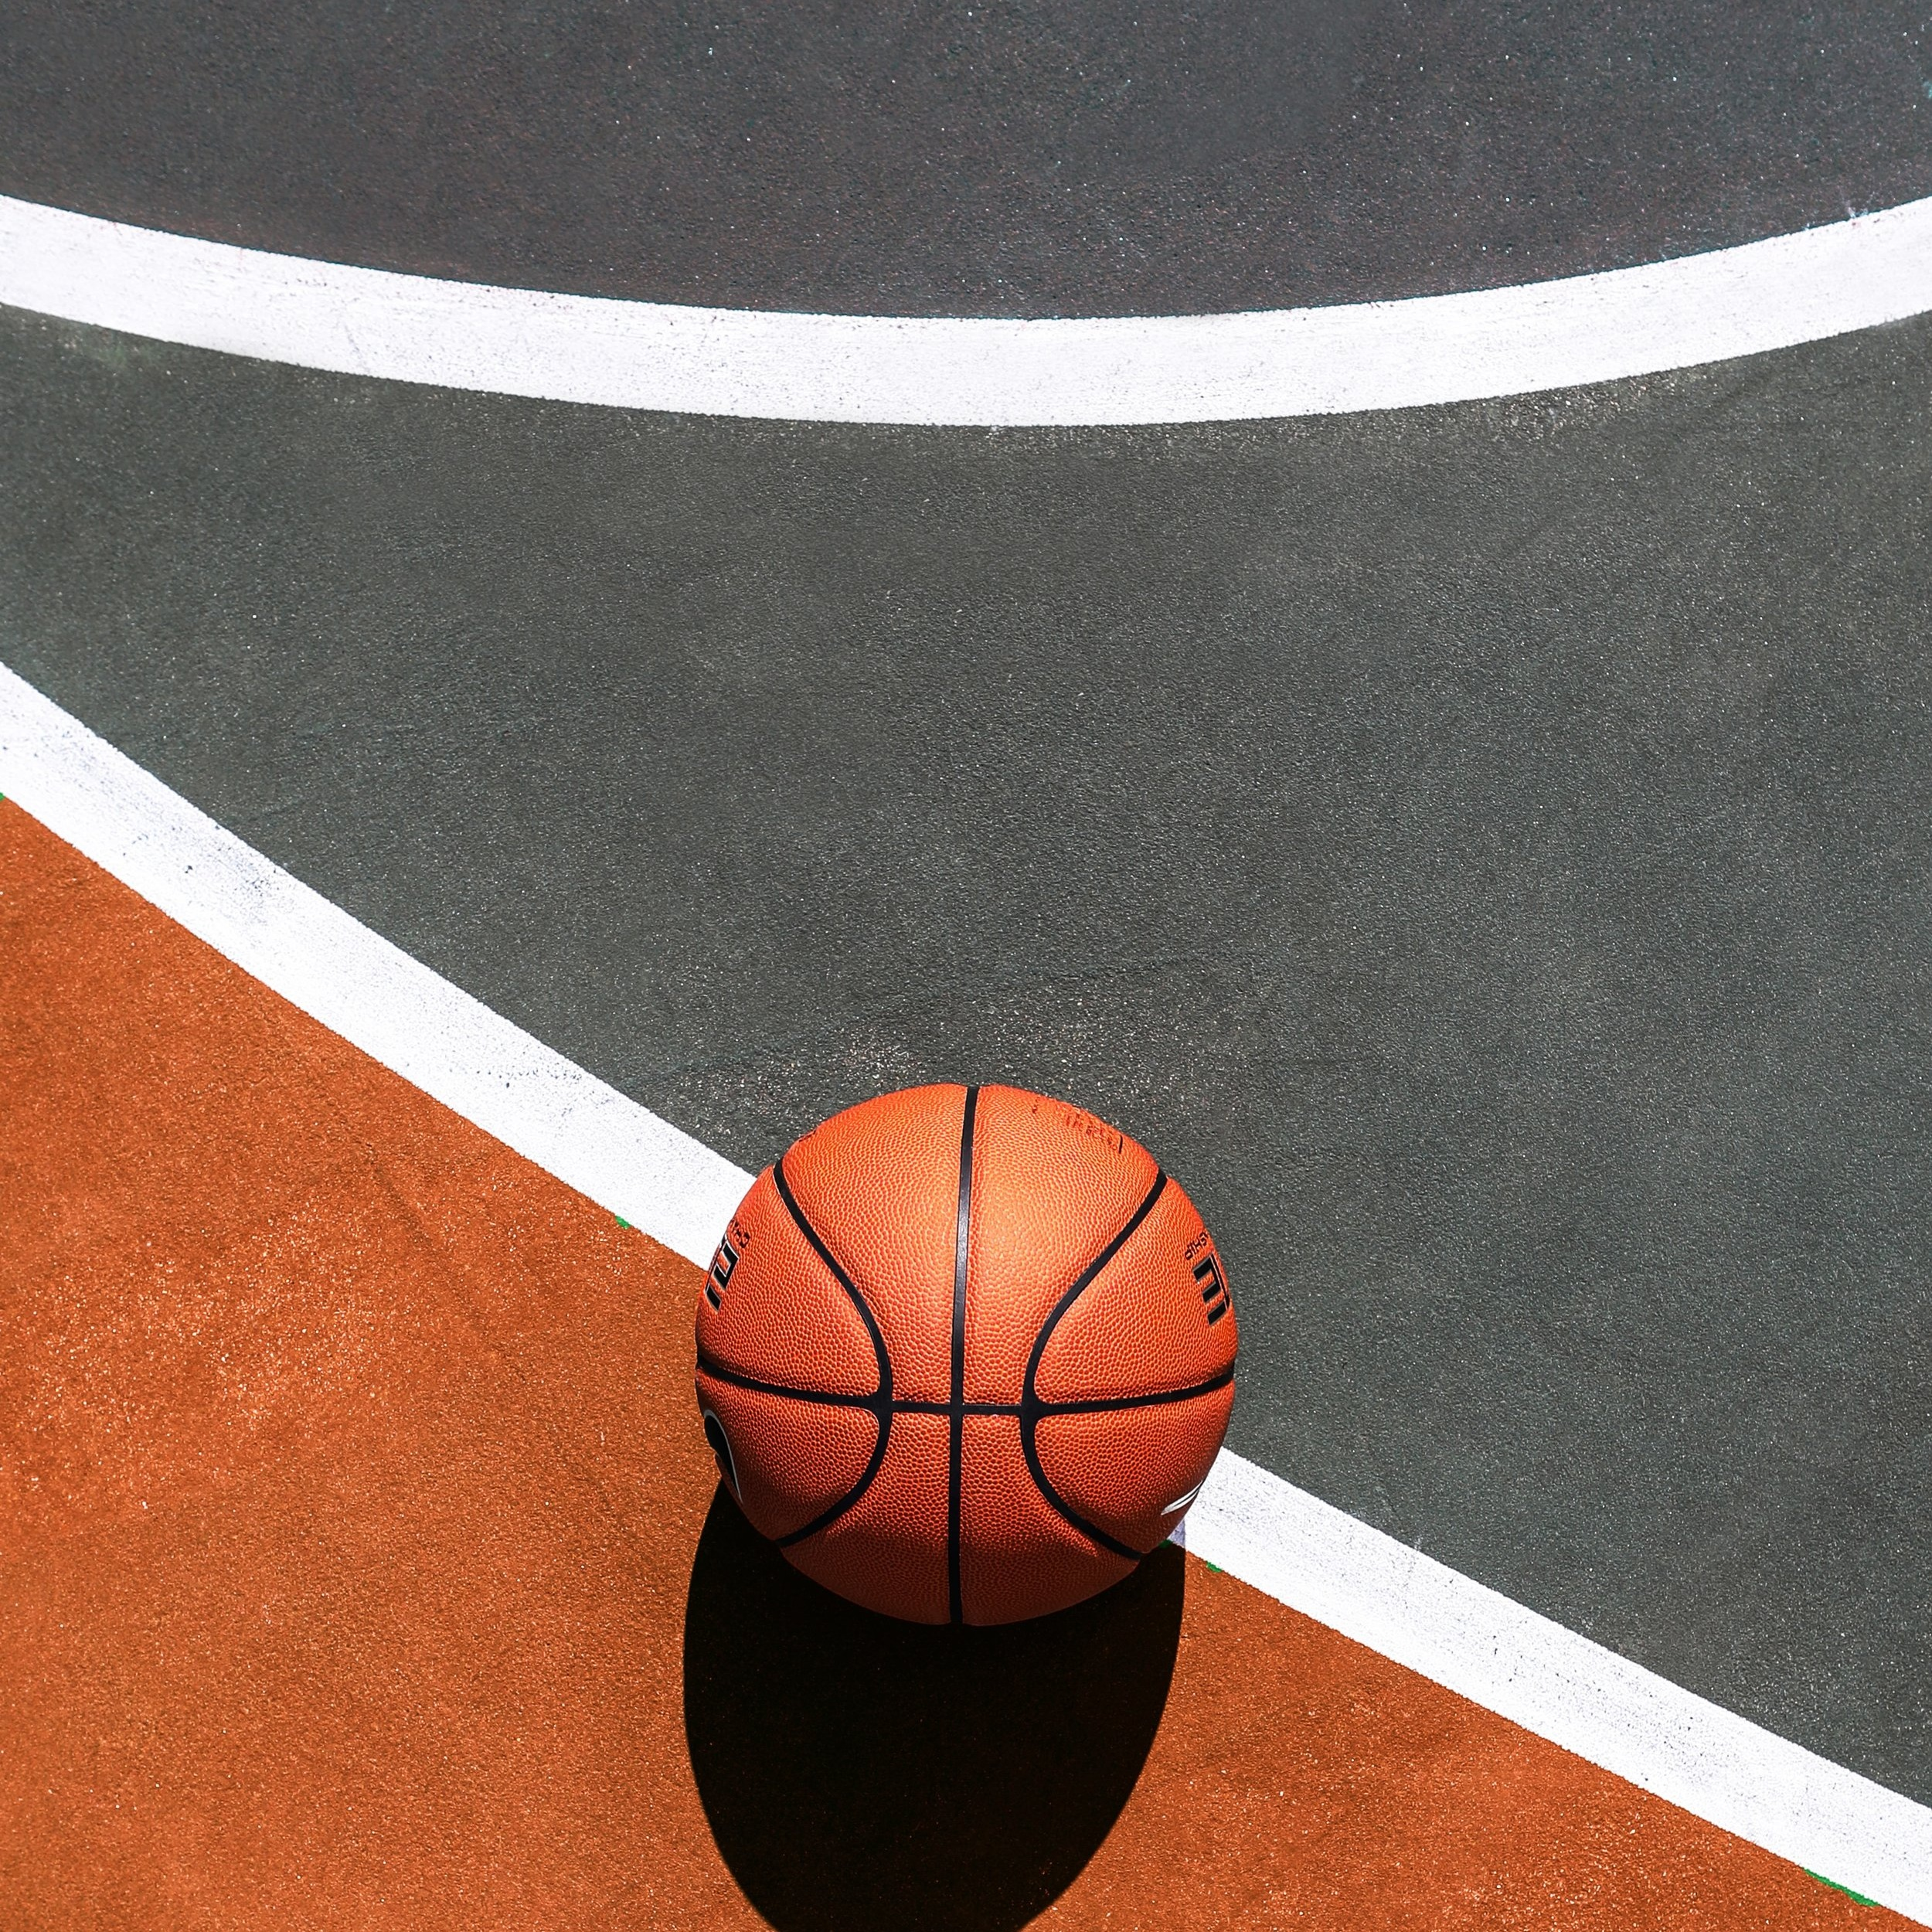 BASKETBALL - Most parks have a basketball net. A large number have small courts as well. Even though you have seen the nets and the courts, have you given basketball a try yourself yet?